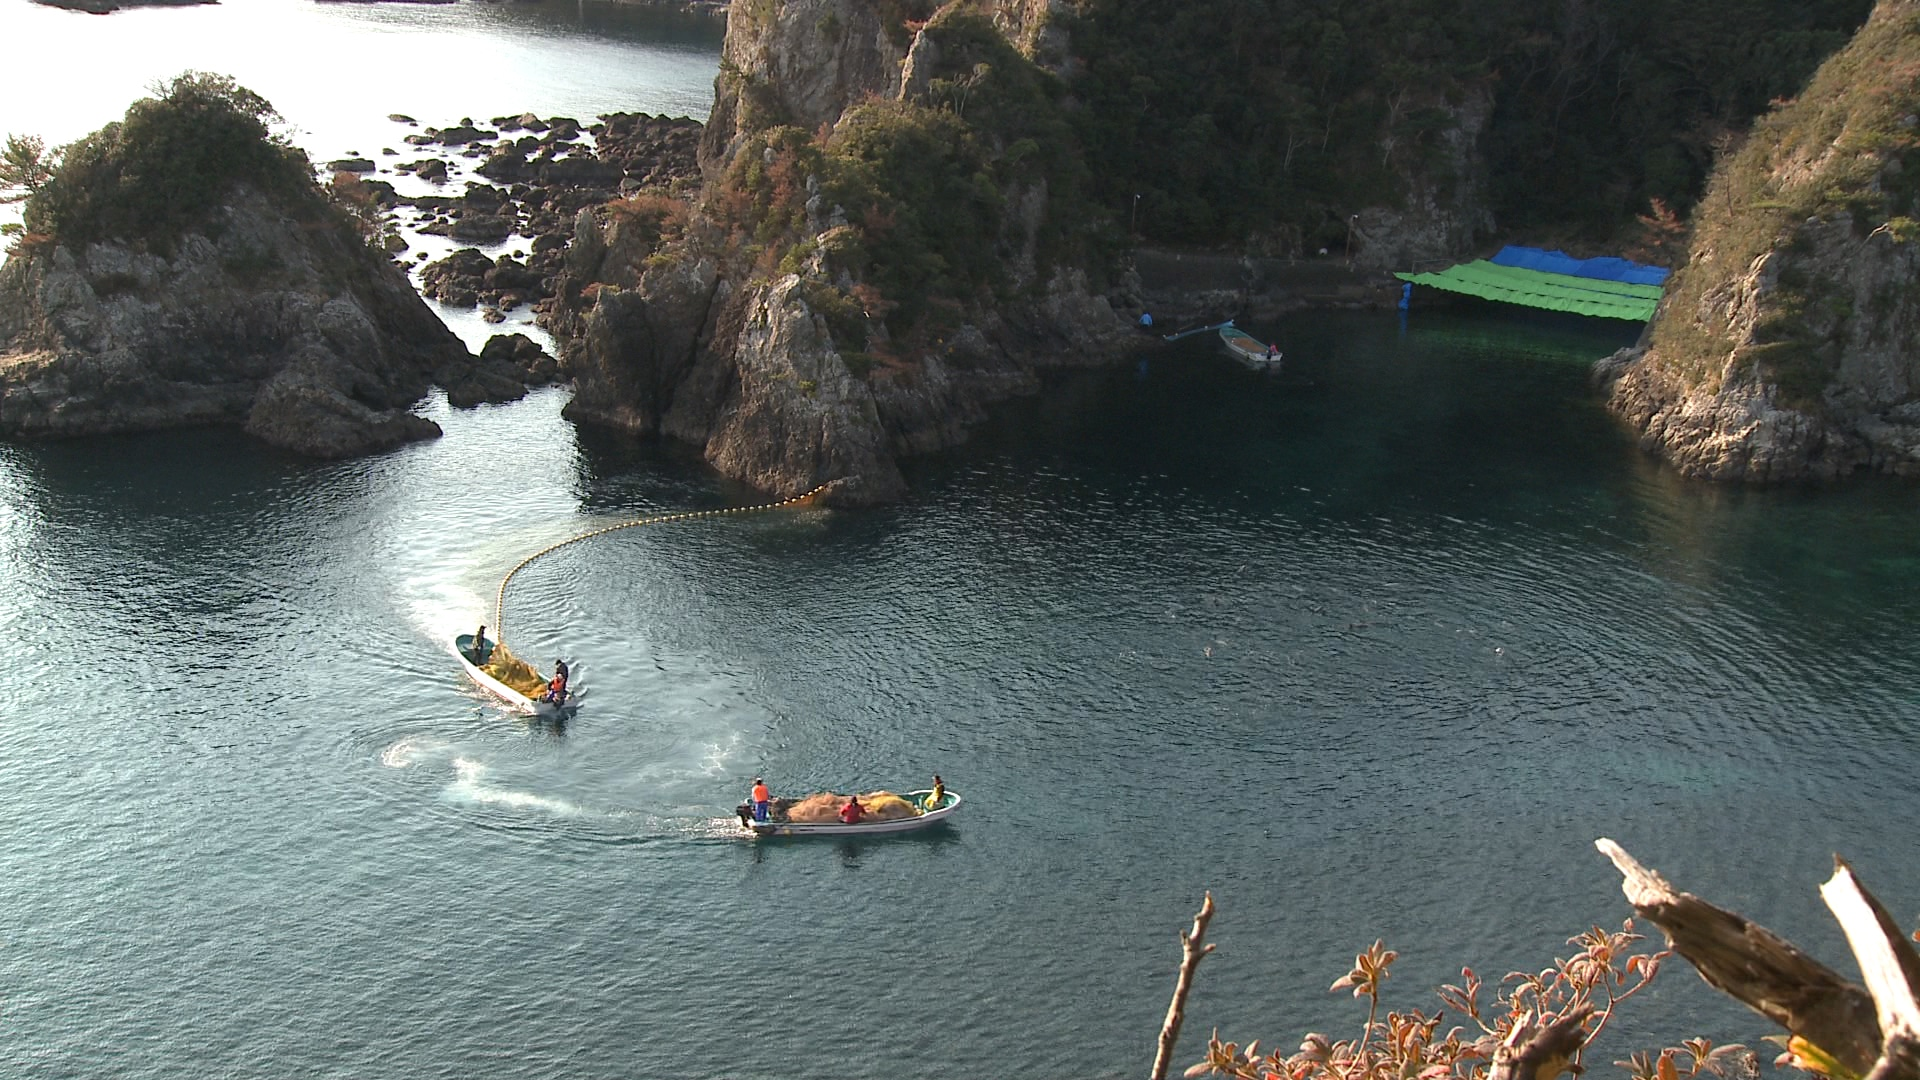 This is the cove in Taiji, Japan. Dolphins are herded into the area that is section off with tarpaulin